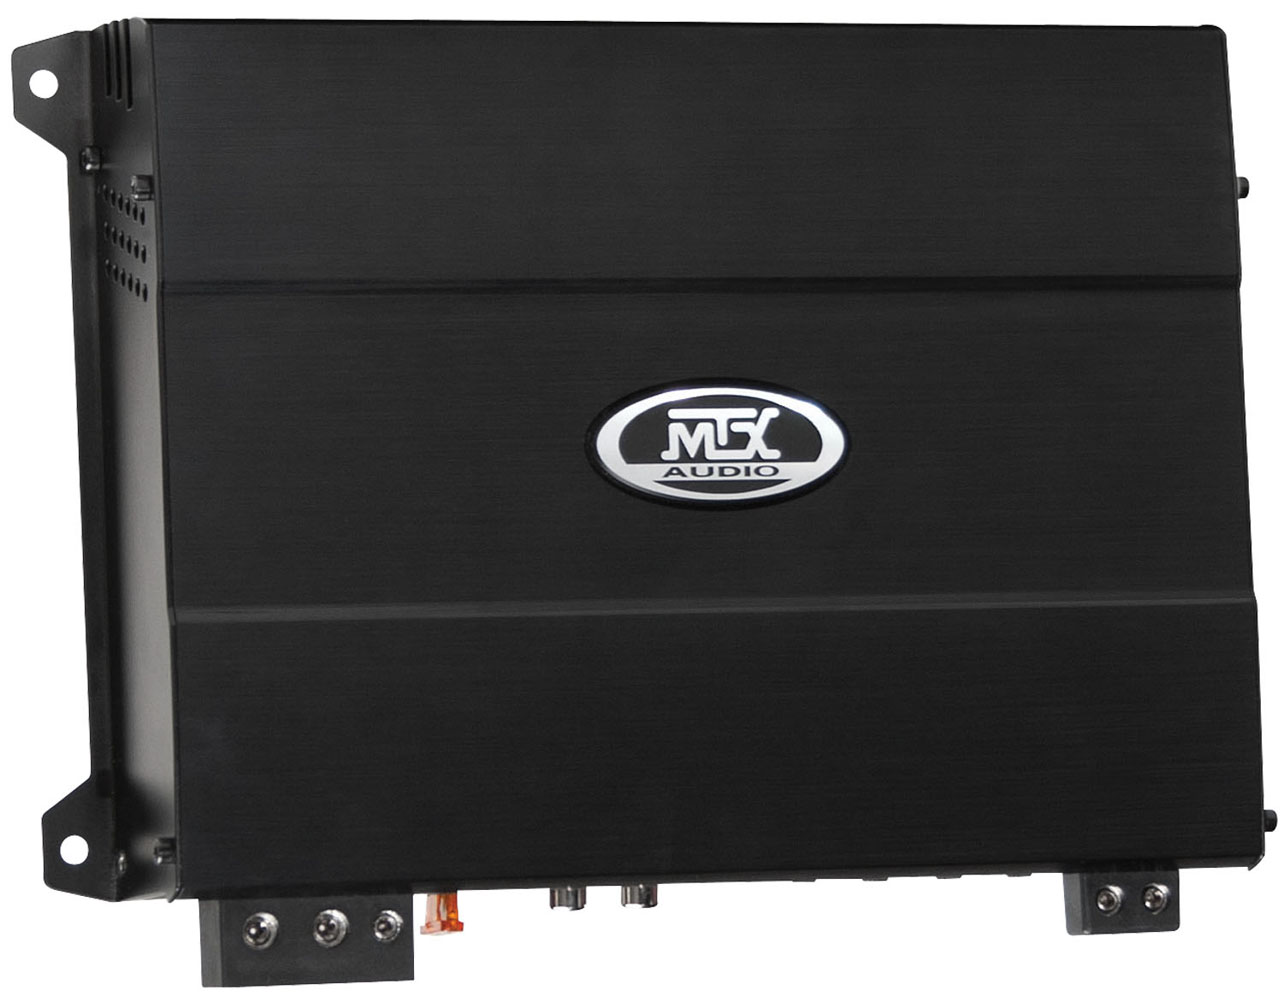 Th3501d Mtx 350w Car Subwoofer Amplifier Audio Serious Edge Amp And Wiring Kit About Sound